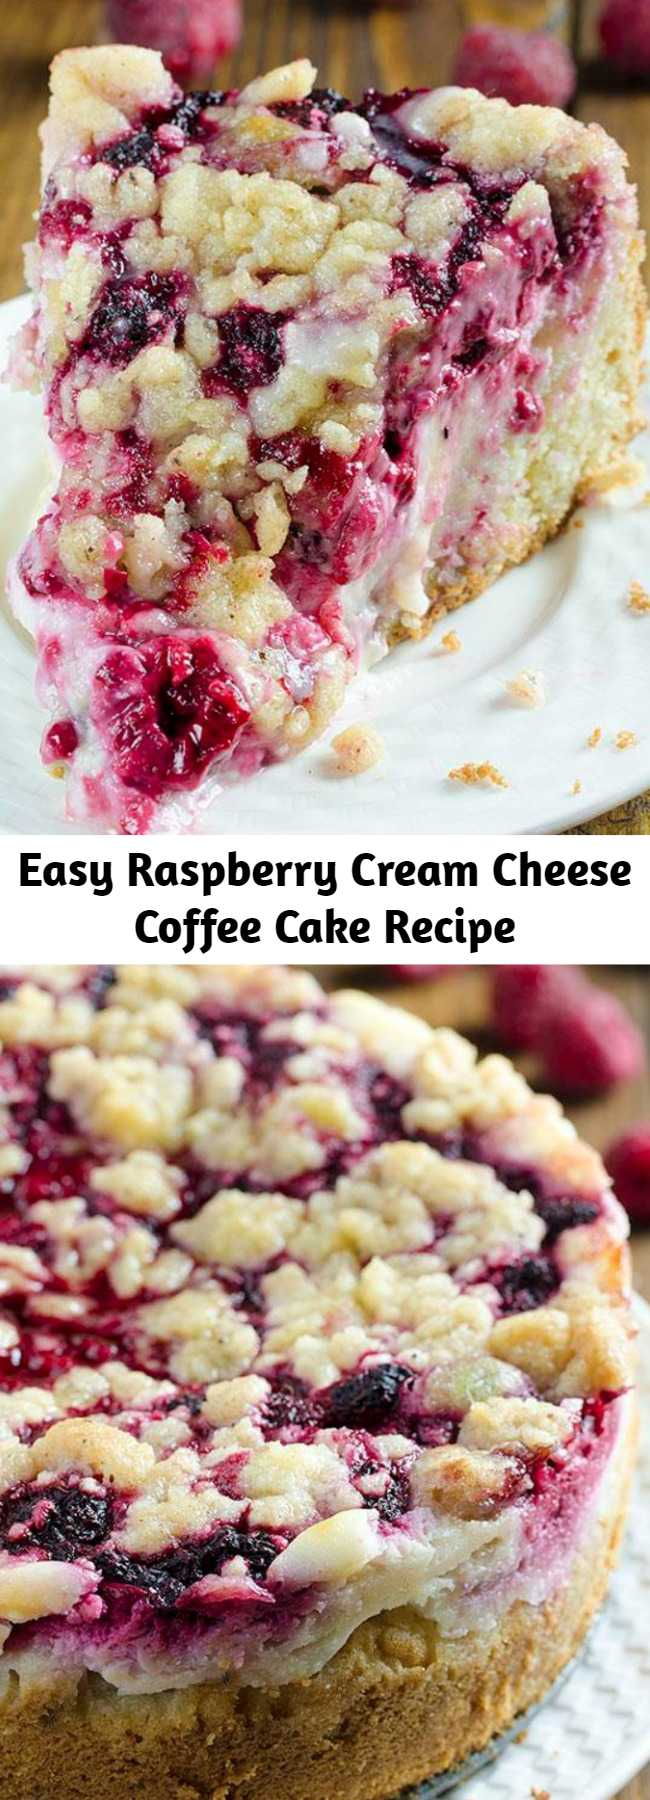 Easy Raspberry Cream Cheese Coffee Cake Recipe - Moist and buttery cake, creamy cheesecake filling, juicy raspberries and crunchy streusel topping. This fruit-filled coffee cake is tangy, creamy, and a light dessert that is perfect for company!